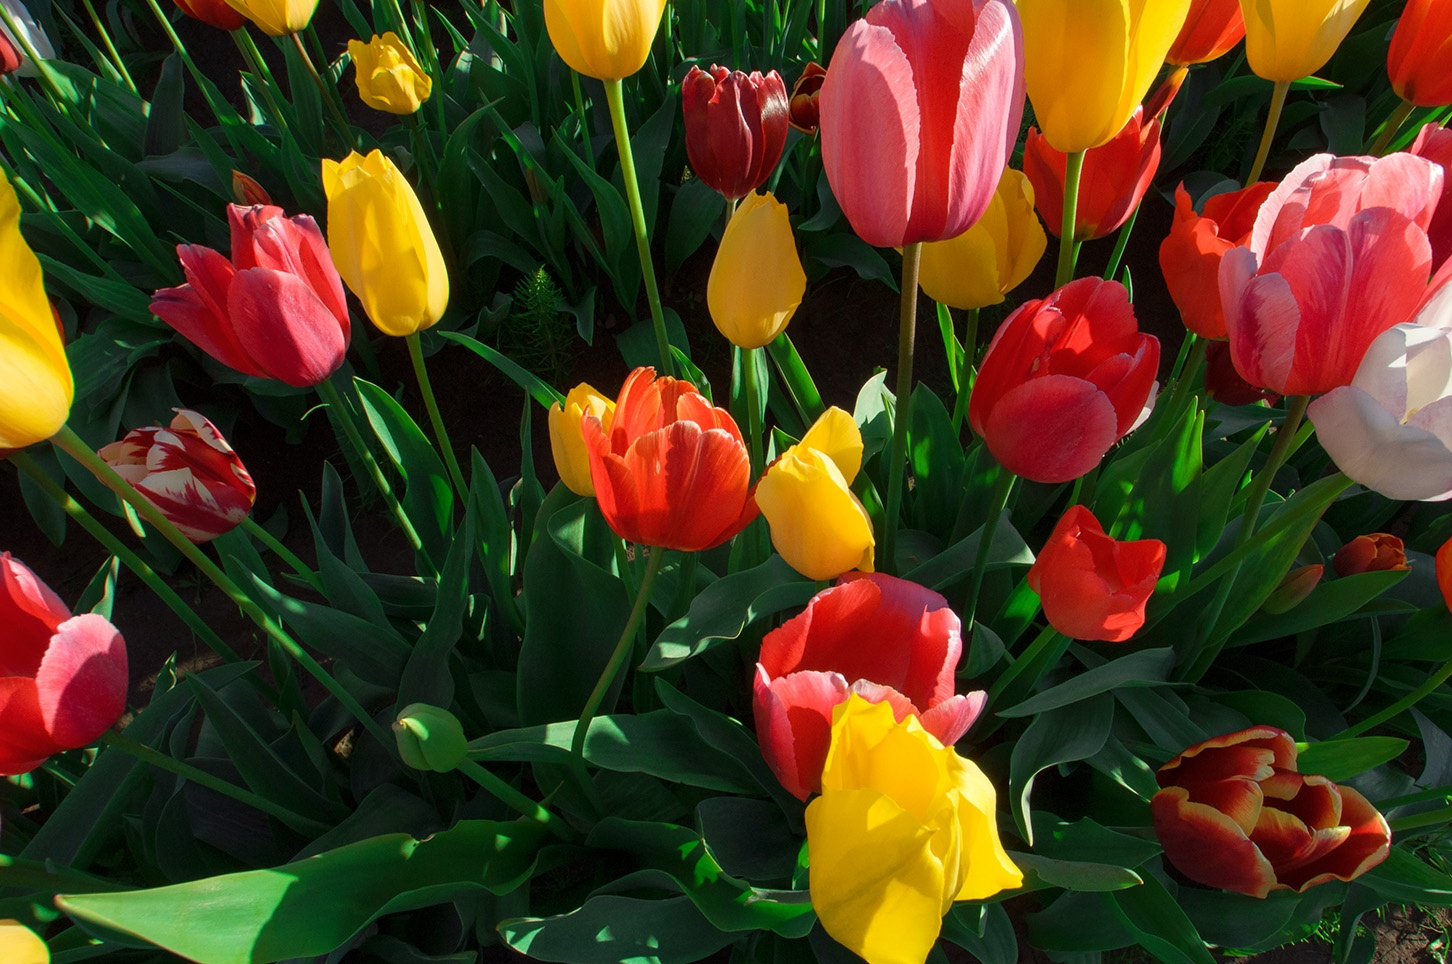 TULIPS by alexito.sate